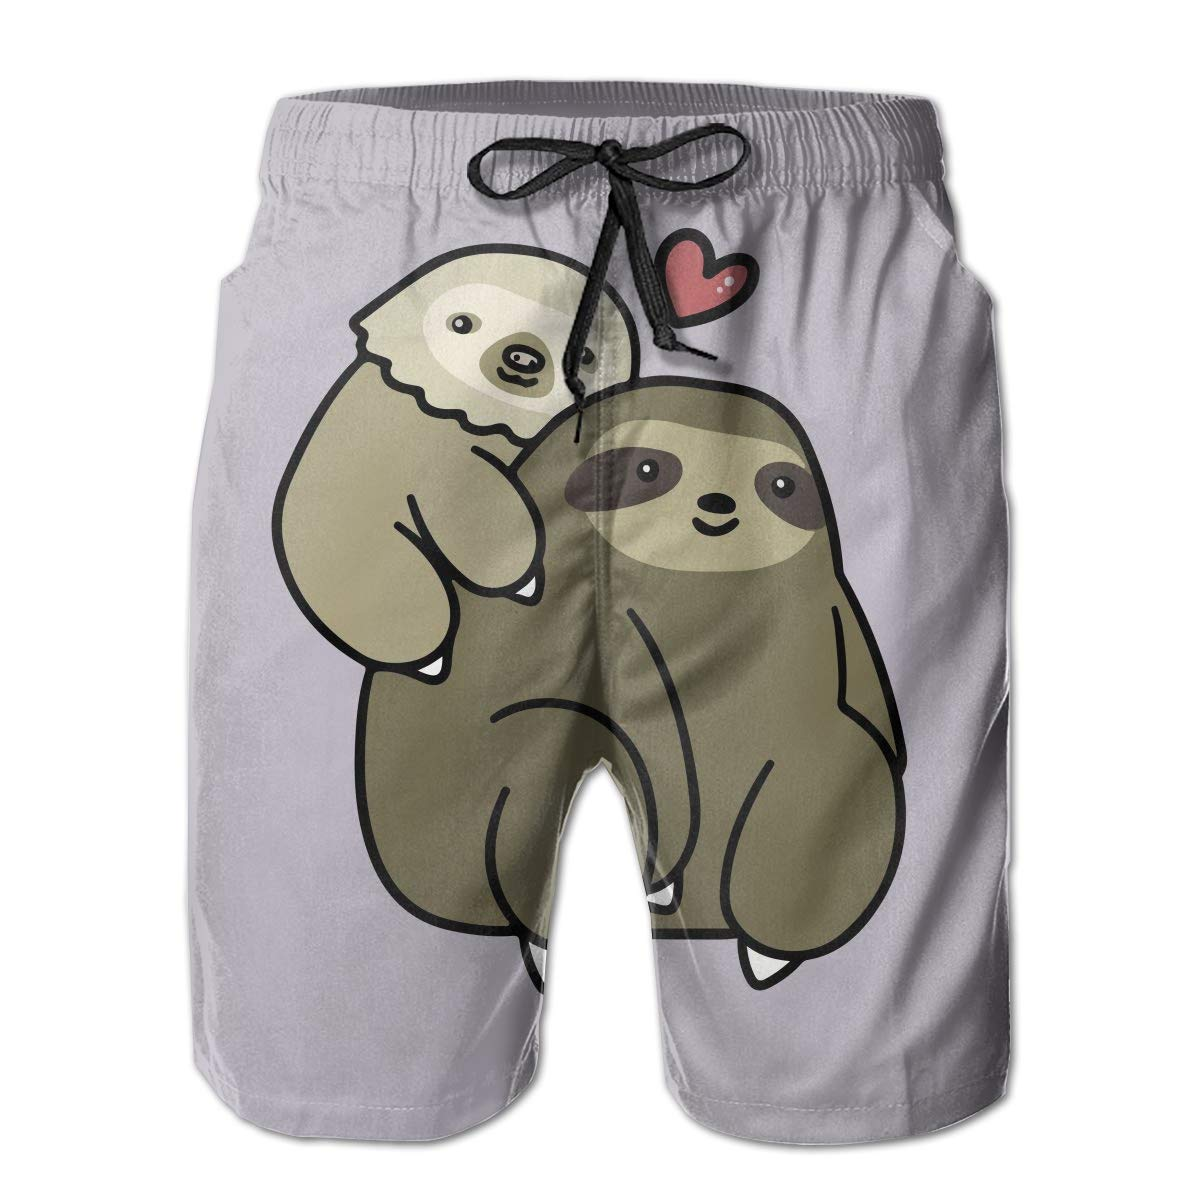 HZamora/_H Mens Two Toed Sloth and Three Toed Sloth Summer Breathable Quick-Drying Swim Trunks Beach Shorts Cargo Shorts